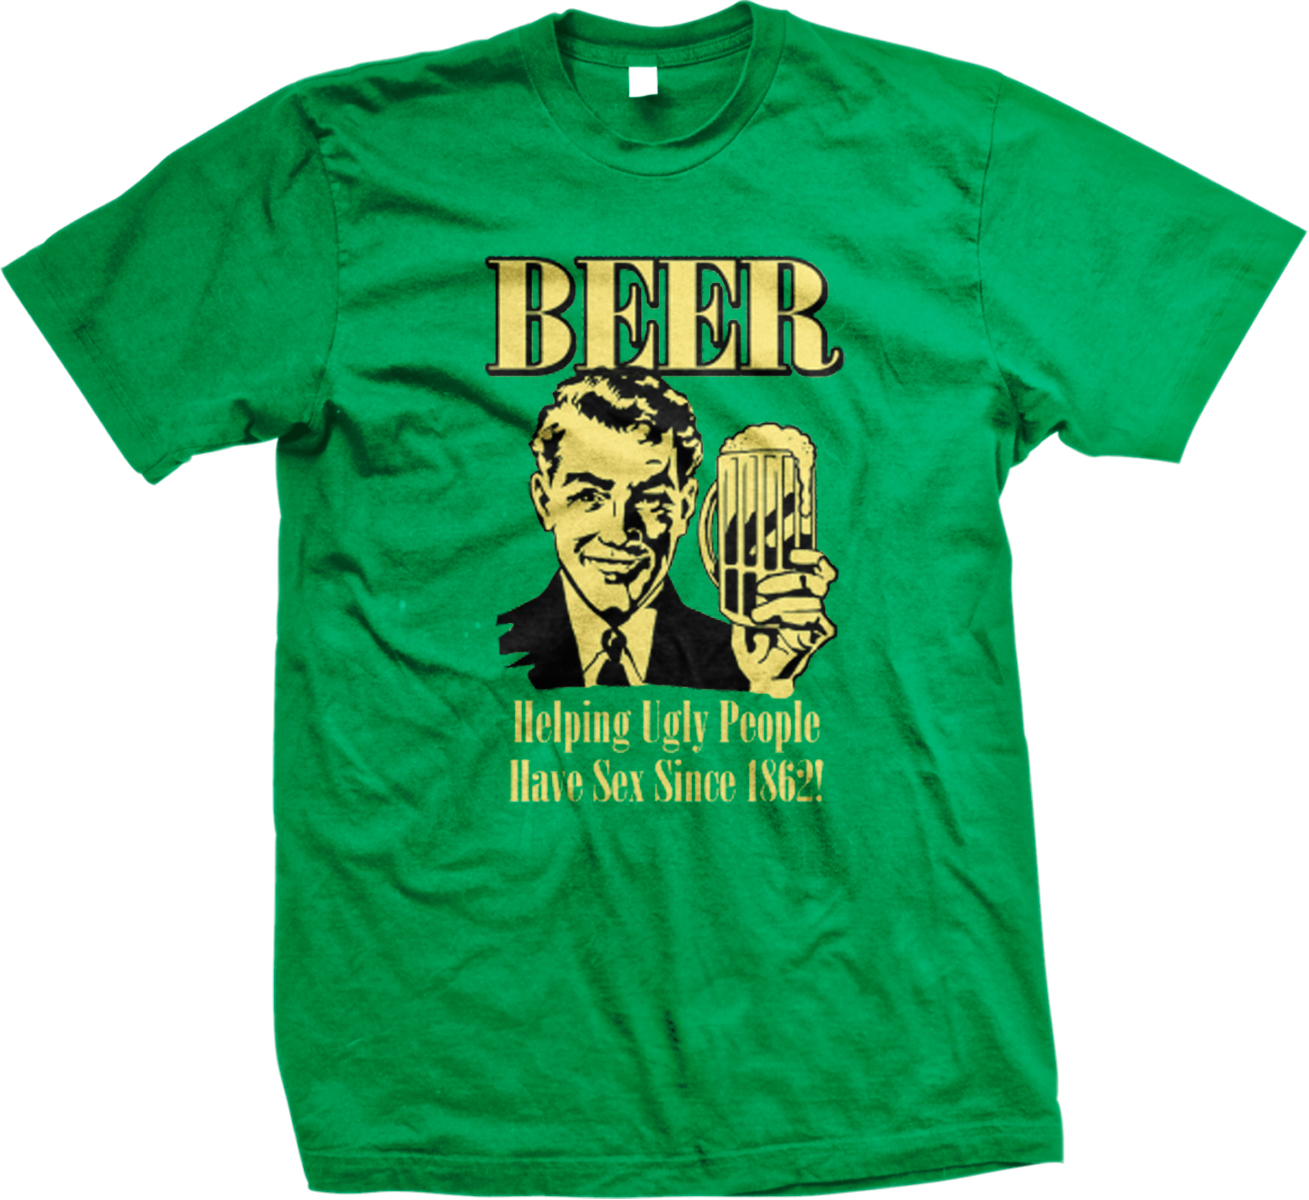 Details about Beer Helping Ugly People Have Sex Drinking Alcohol Funny ...: http://www.ebay.com/itm/like/351748356887?var=620684935128